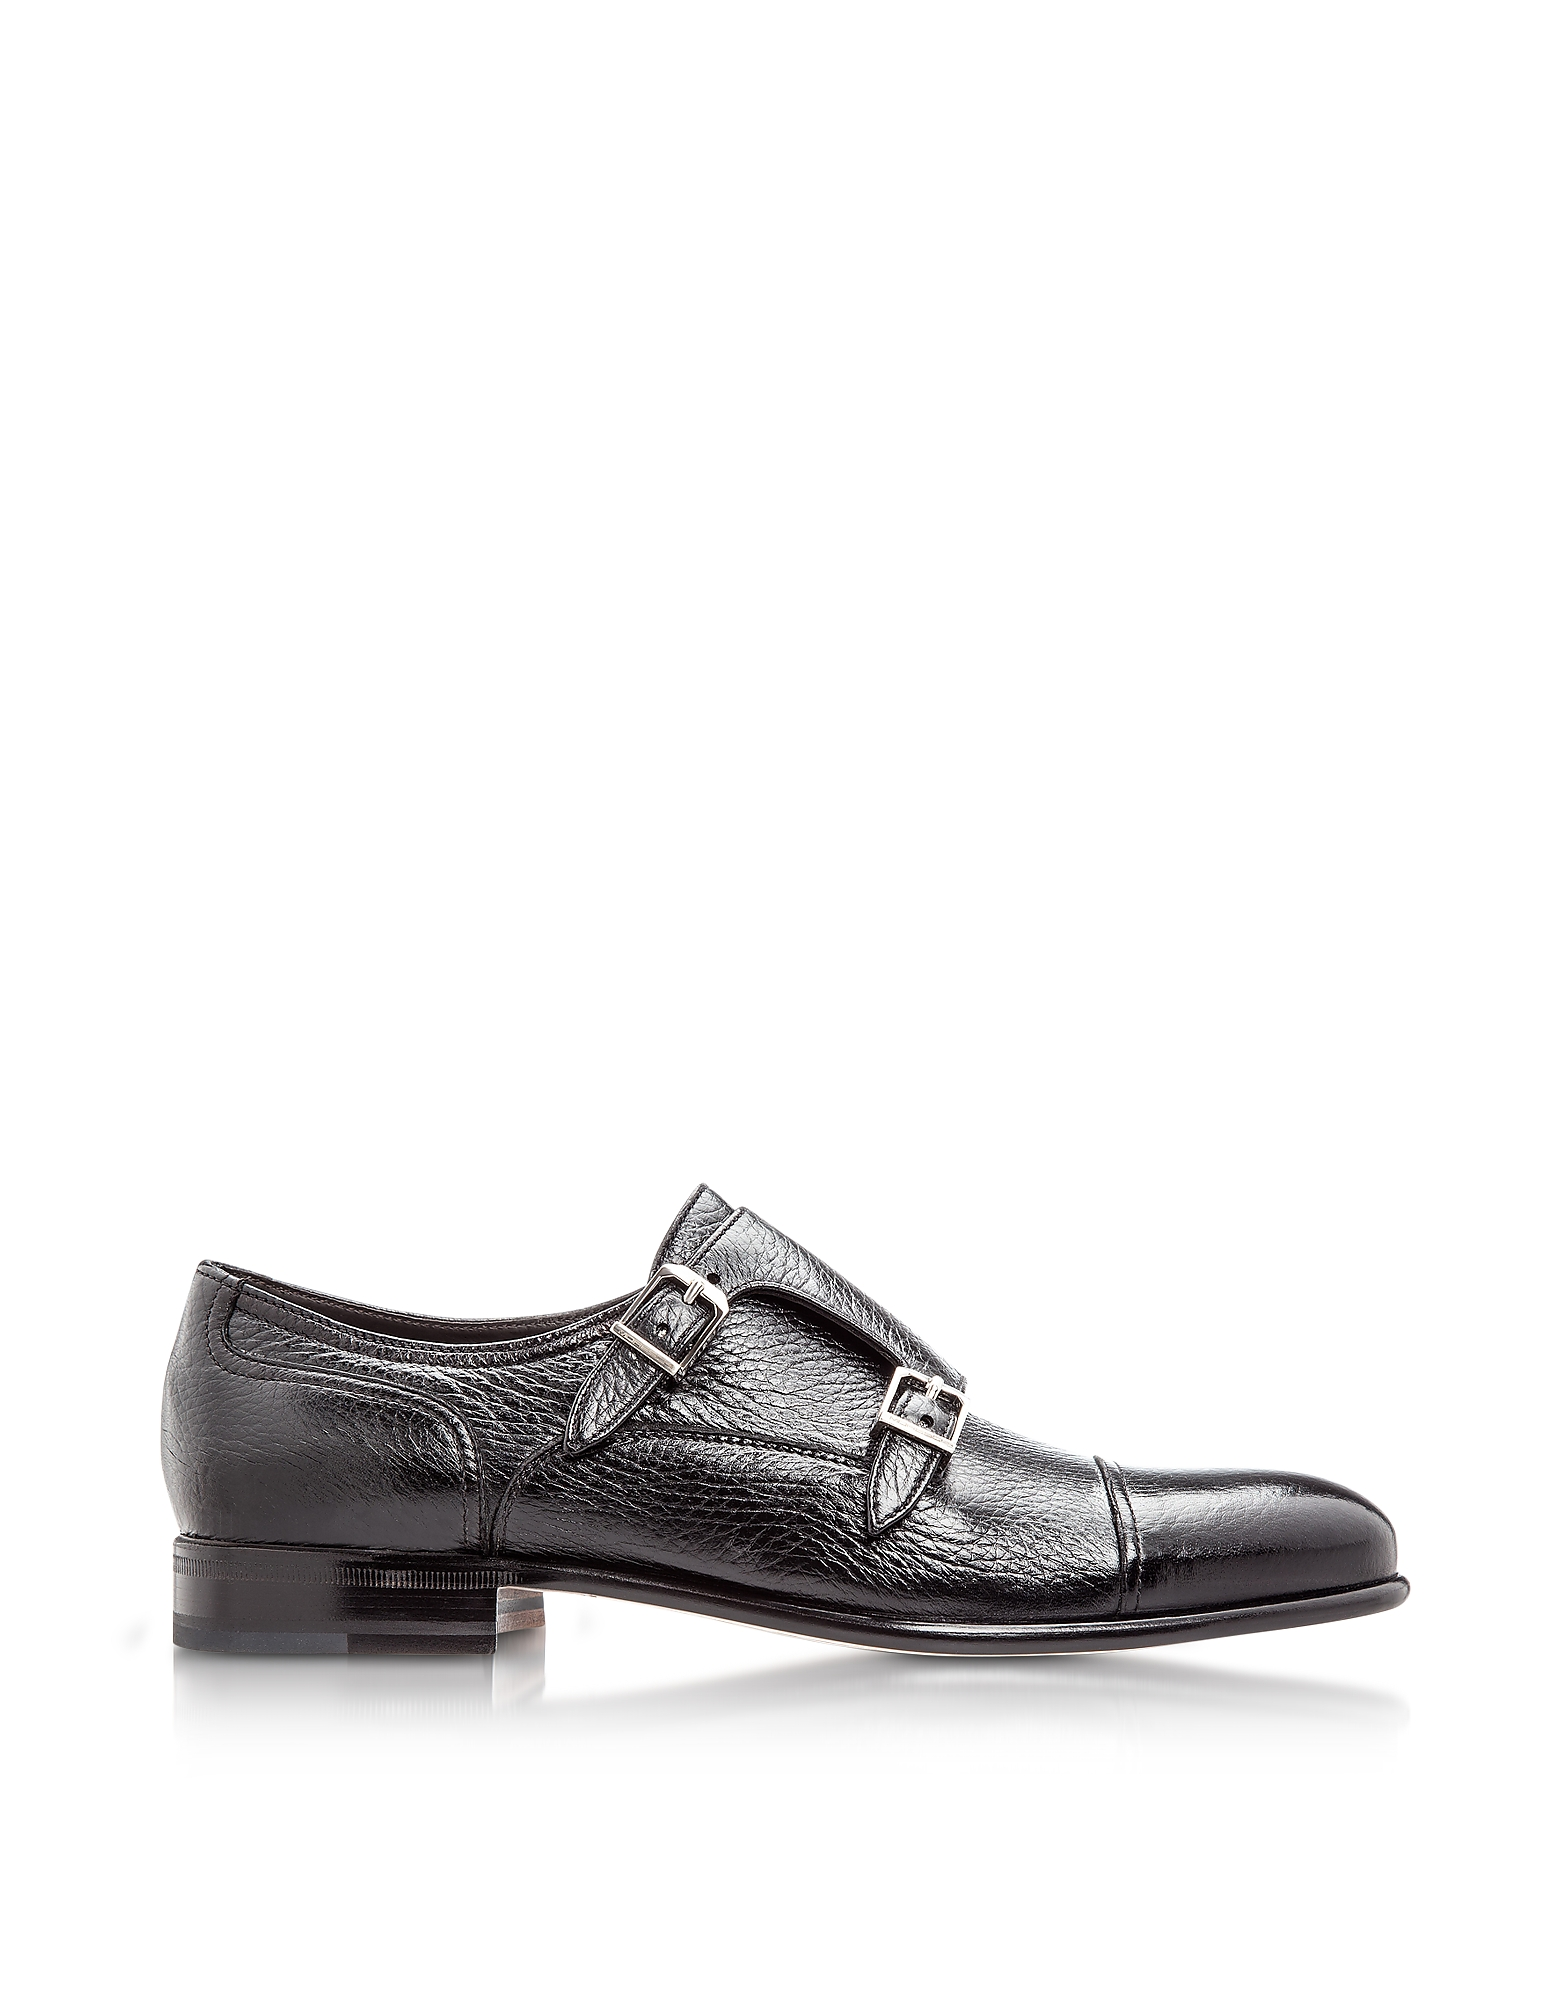 Moreschi Shoes, Eze Black Deerskin Monk Shoes